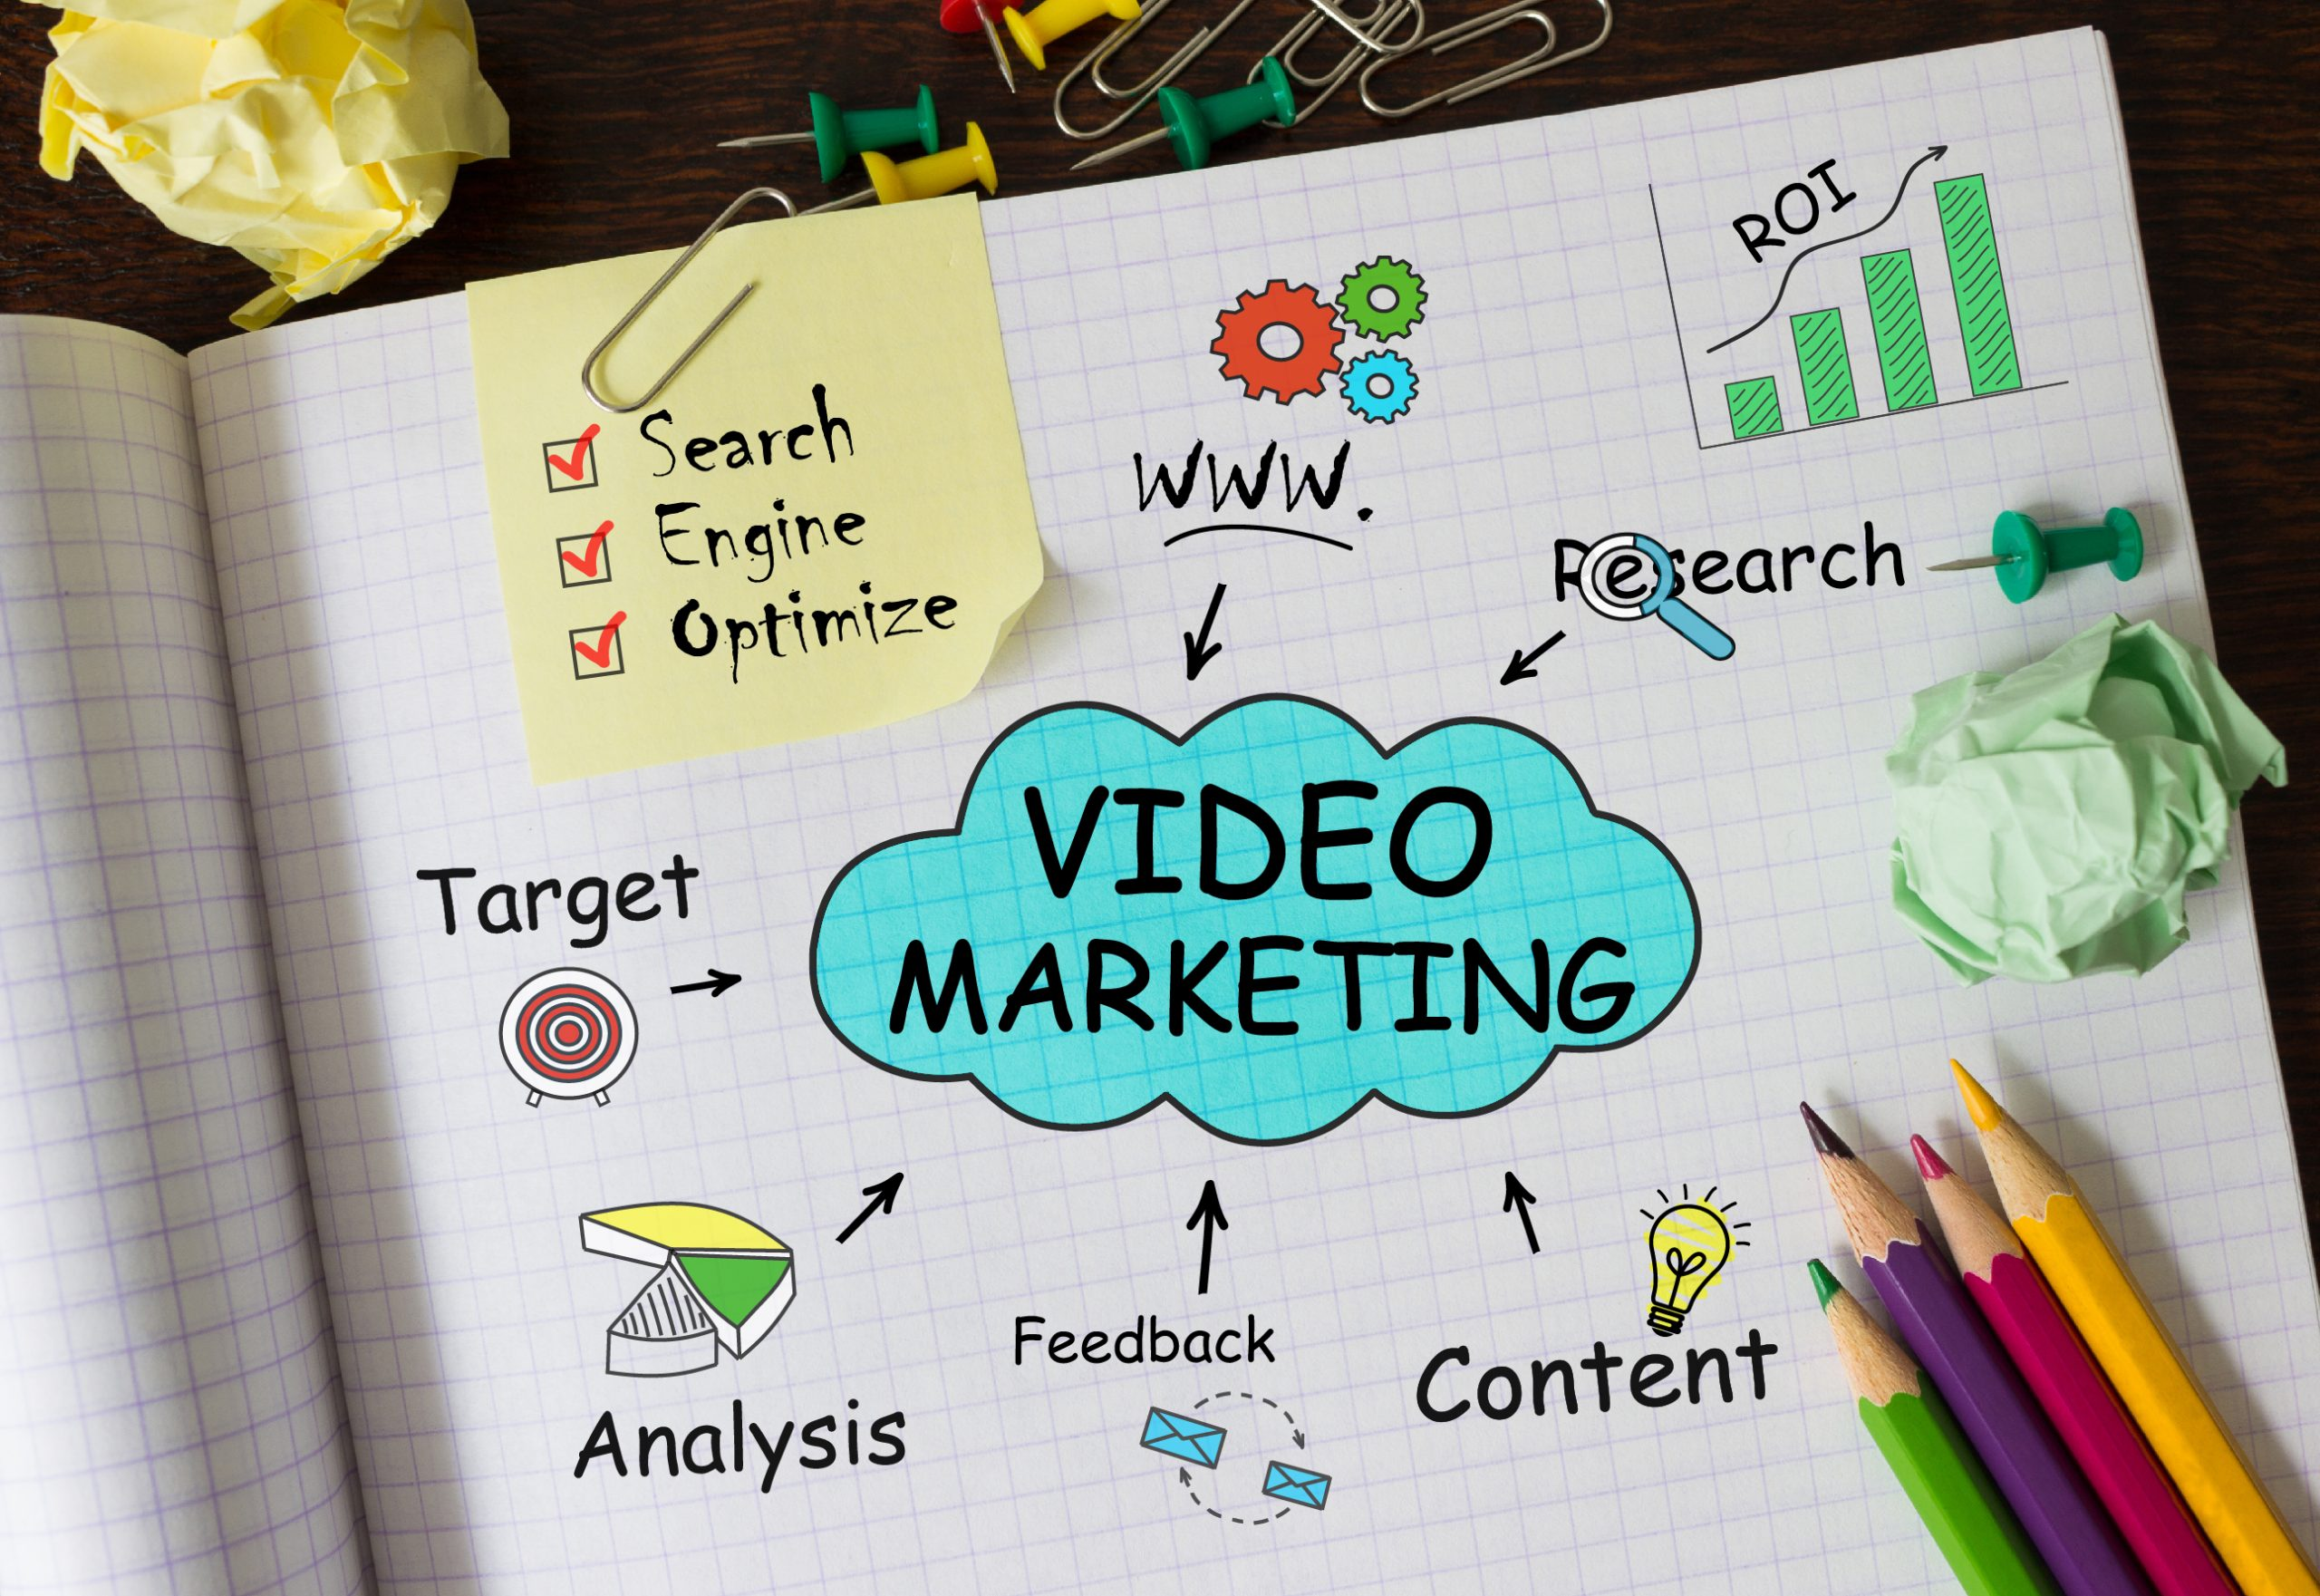 representing Video Marketing Tips